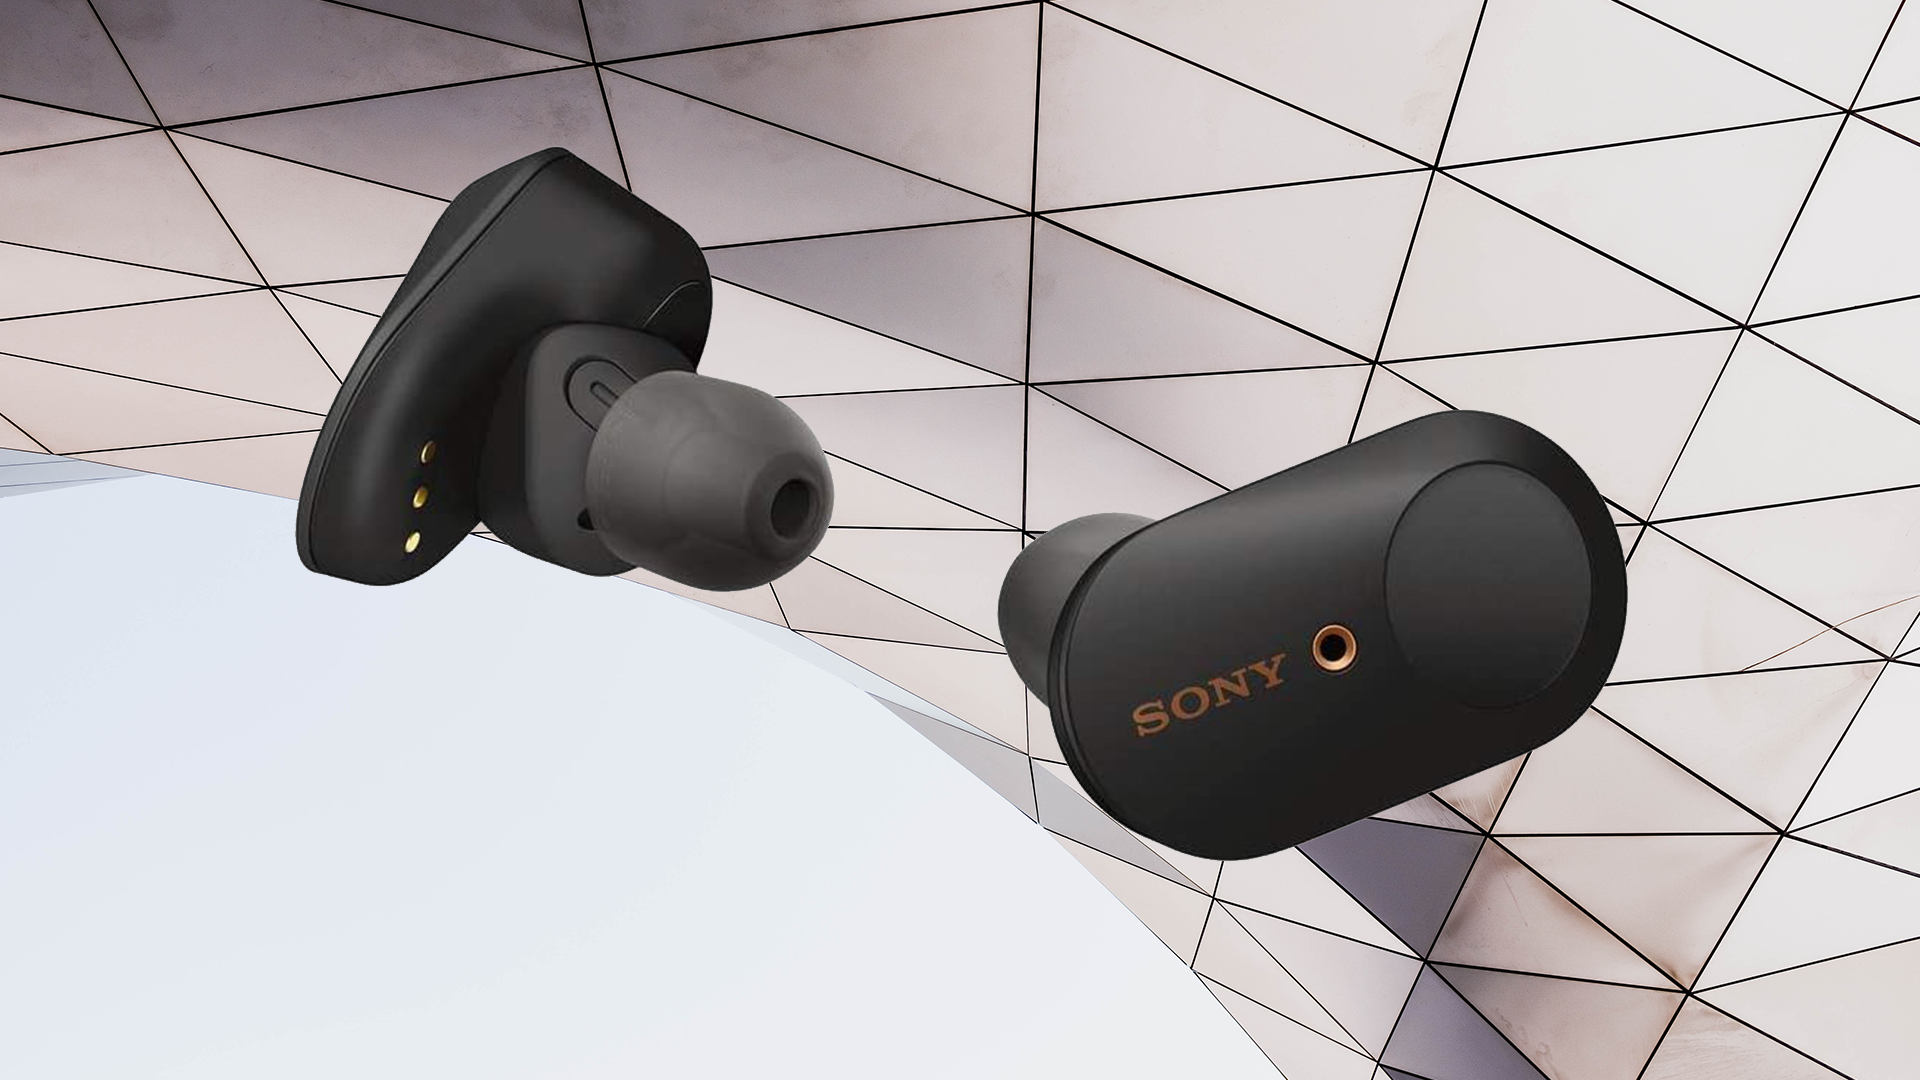 Sony WF-1000XM3 bluetooth headphones see their price reduced